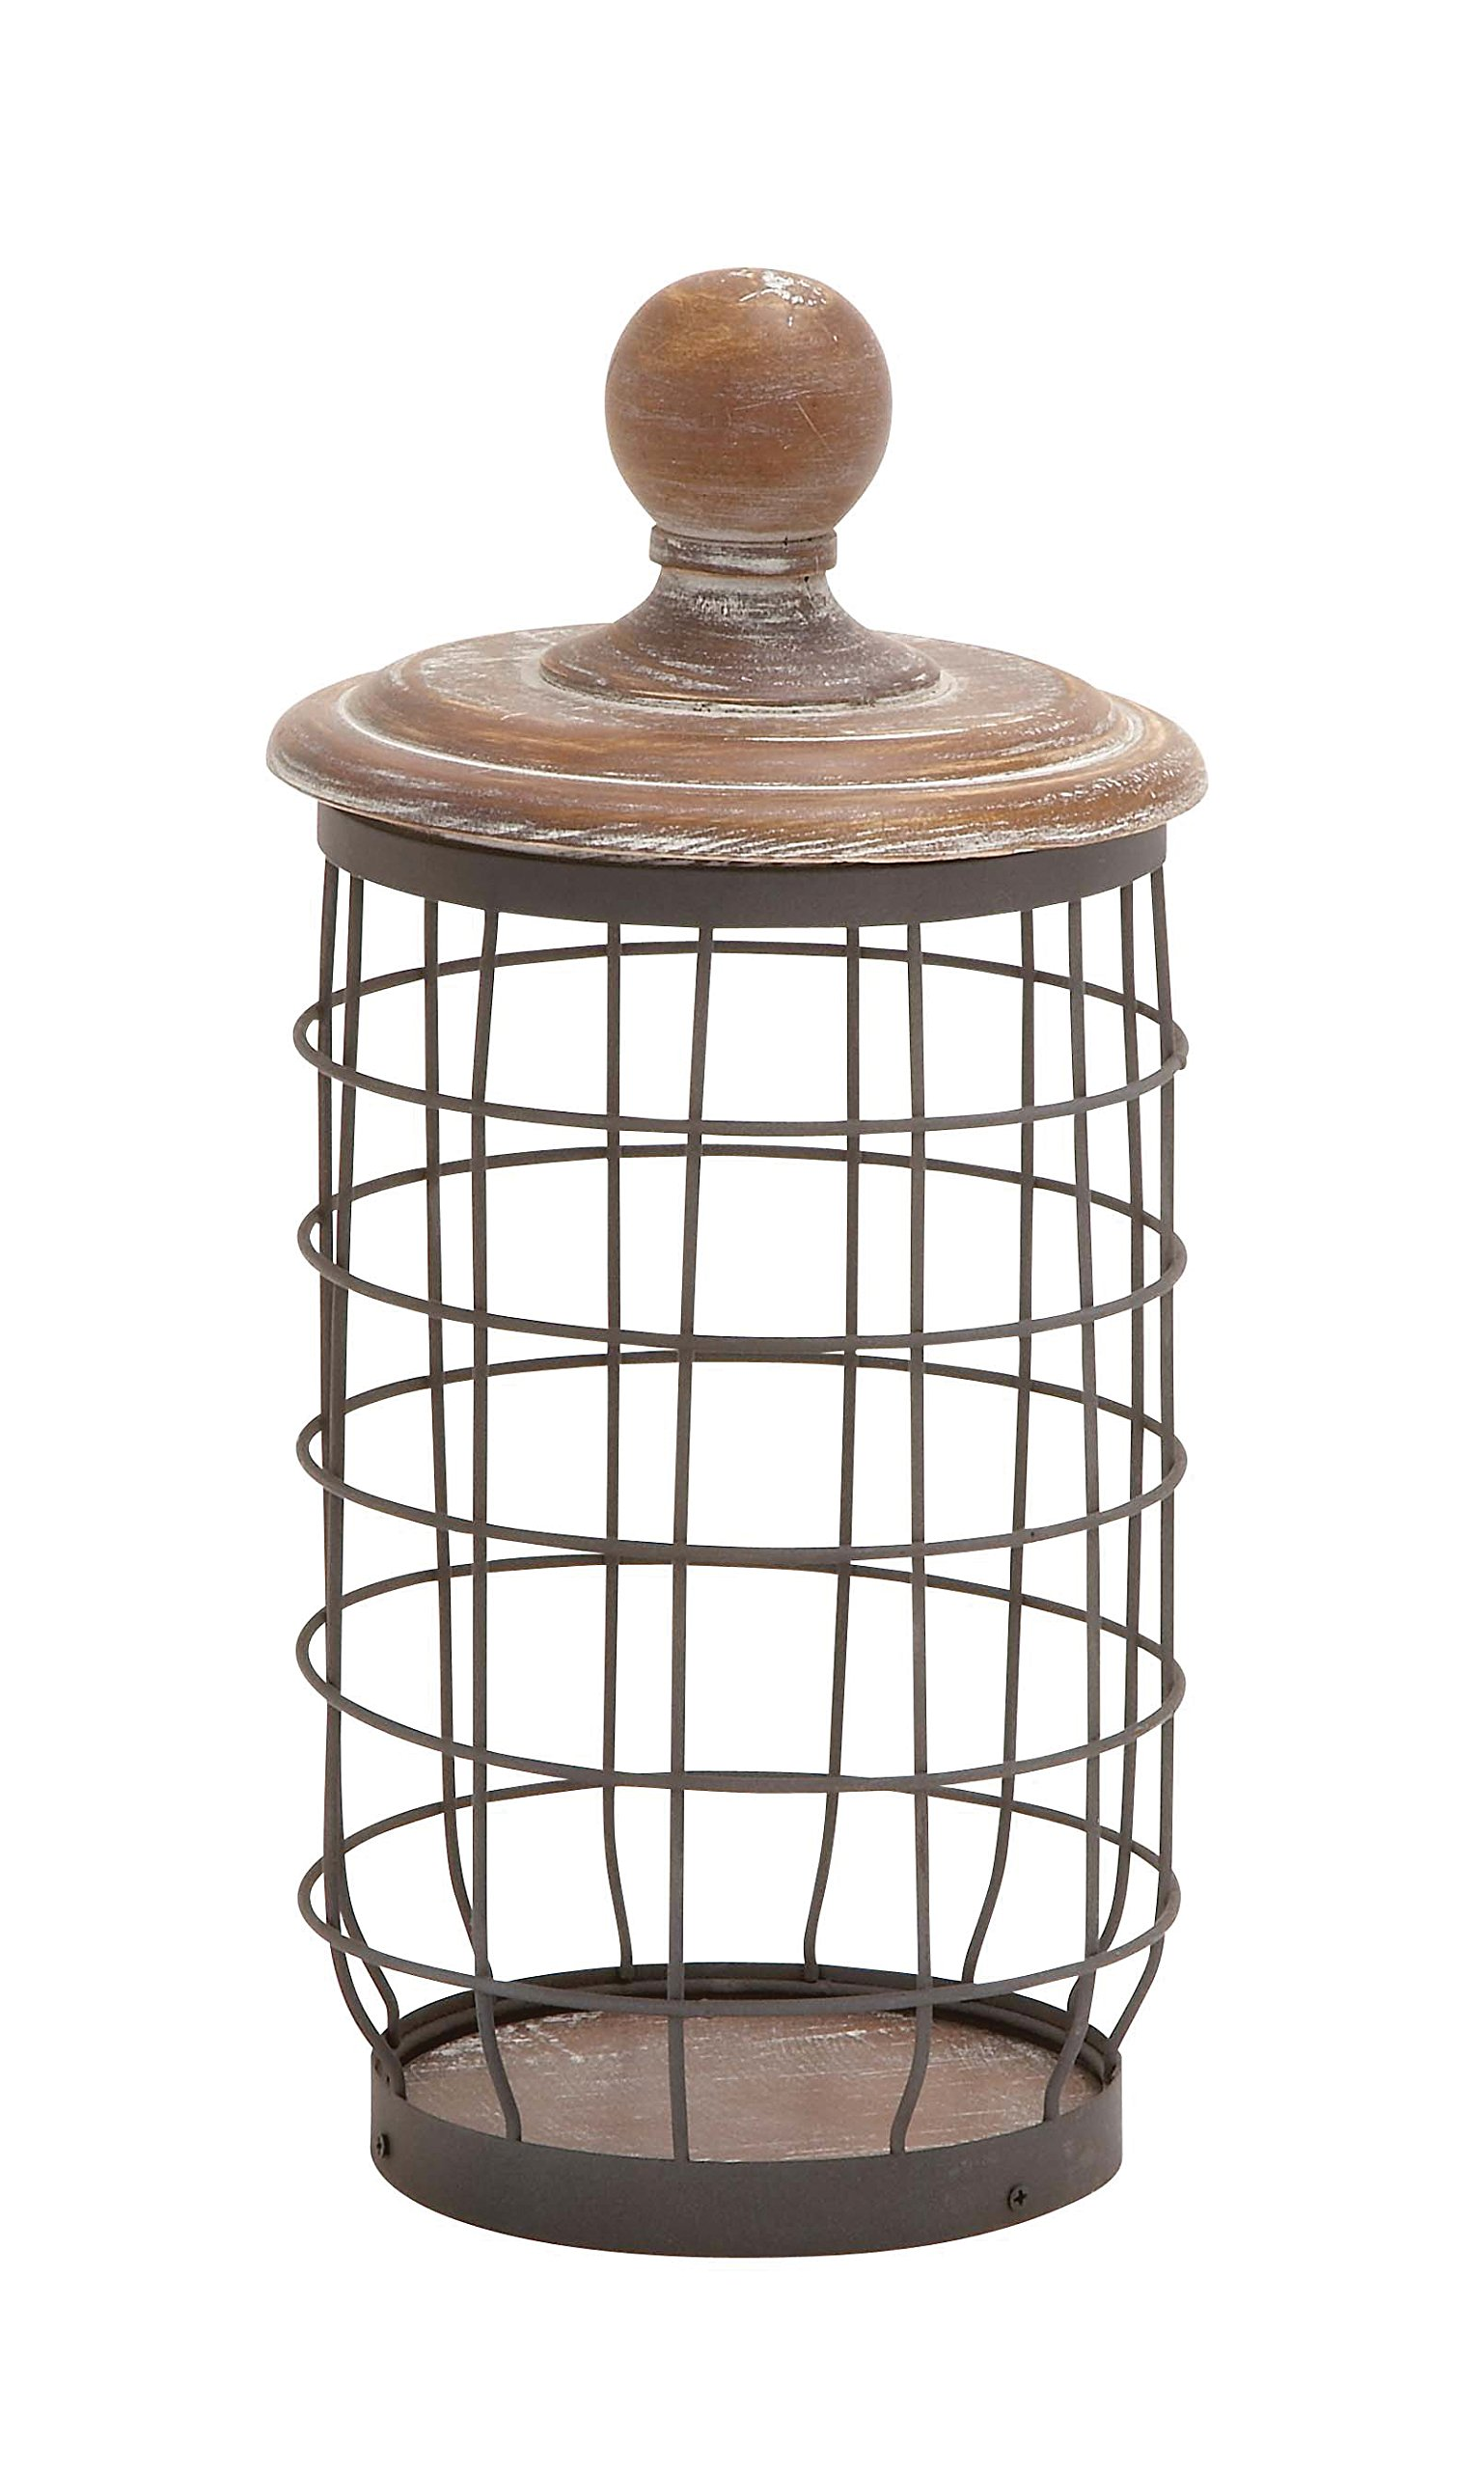 Deco 79 55313 Metal Wood Wire Jar, 7'' by 13'' by Deco 79 (Image #1)